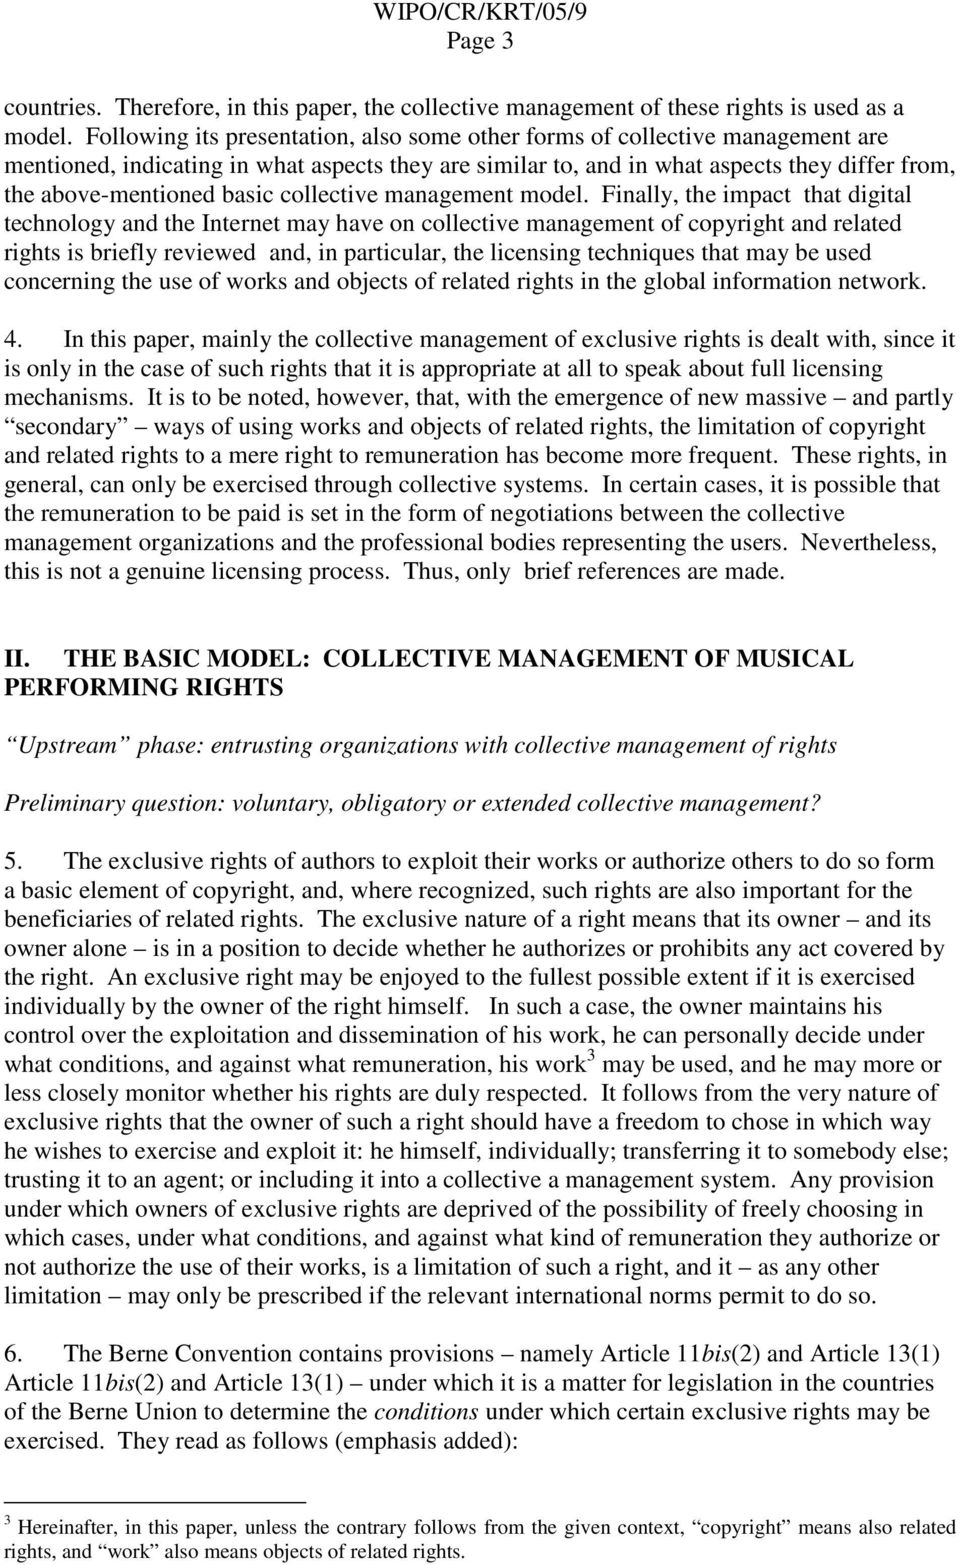 basic collective management model.